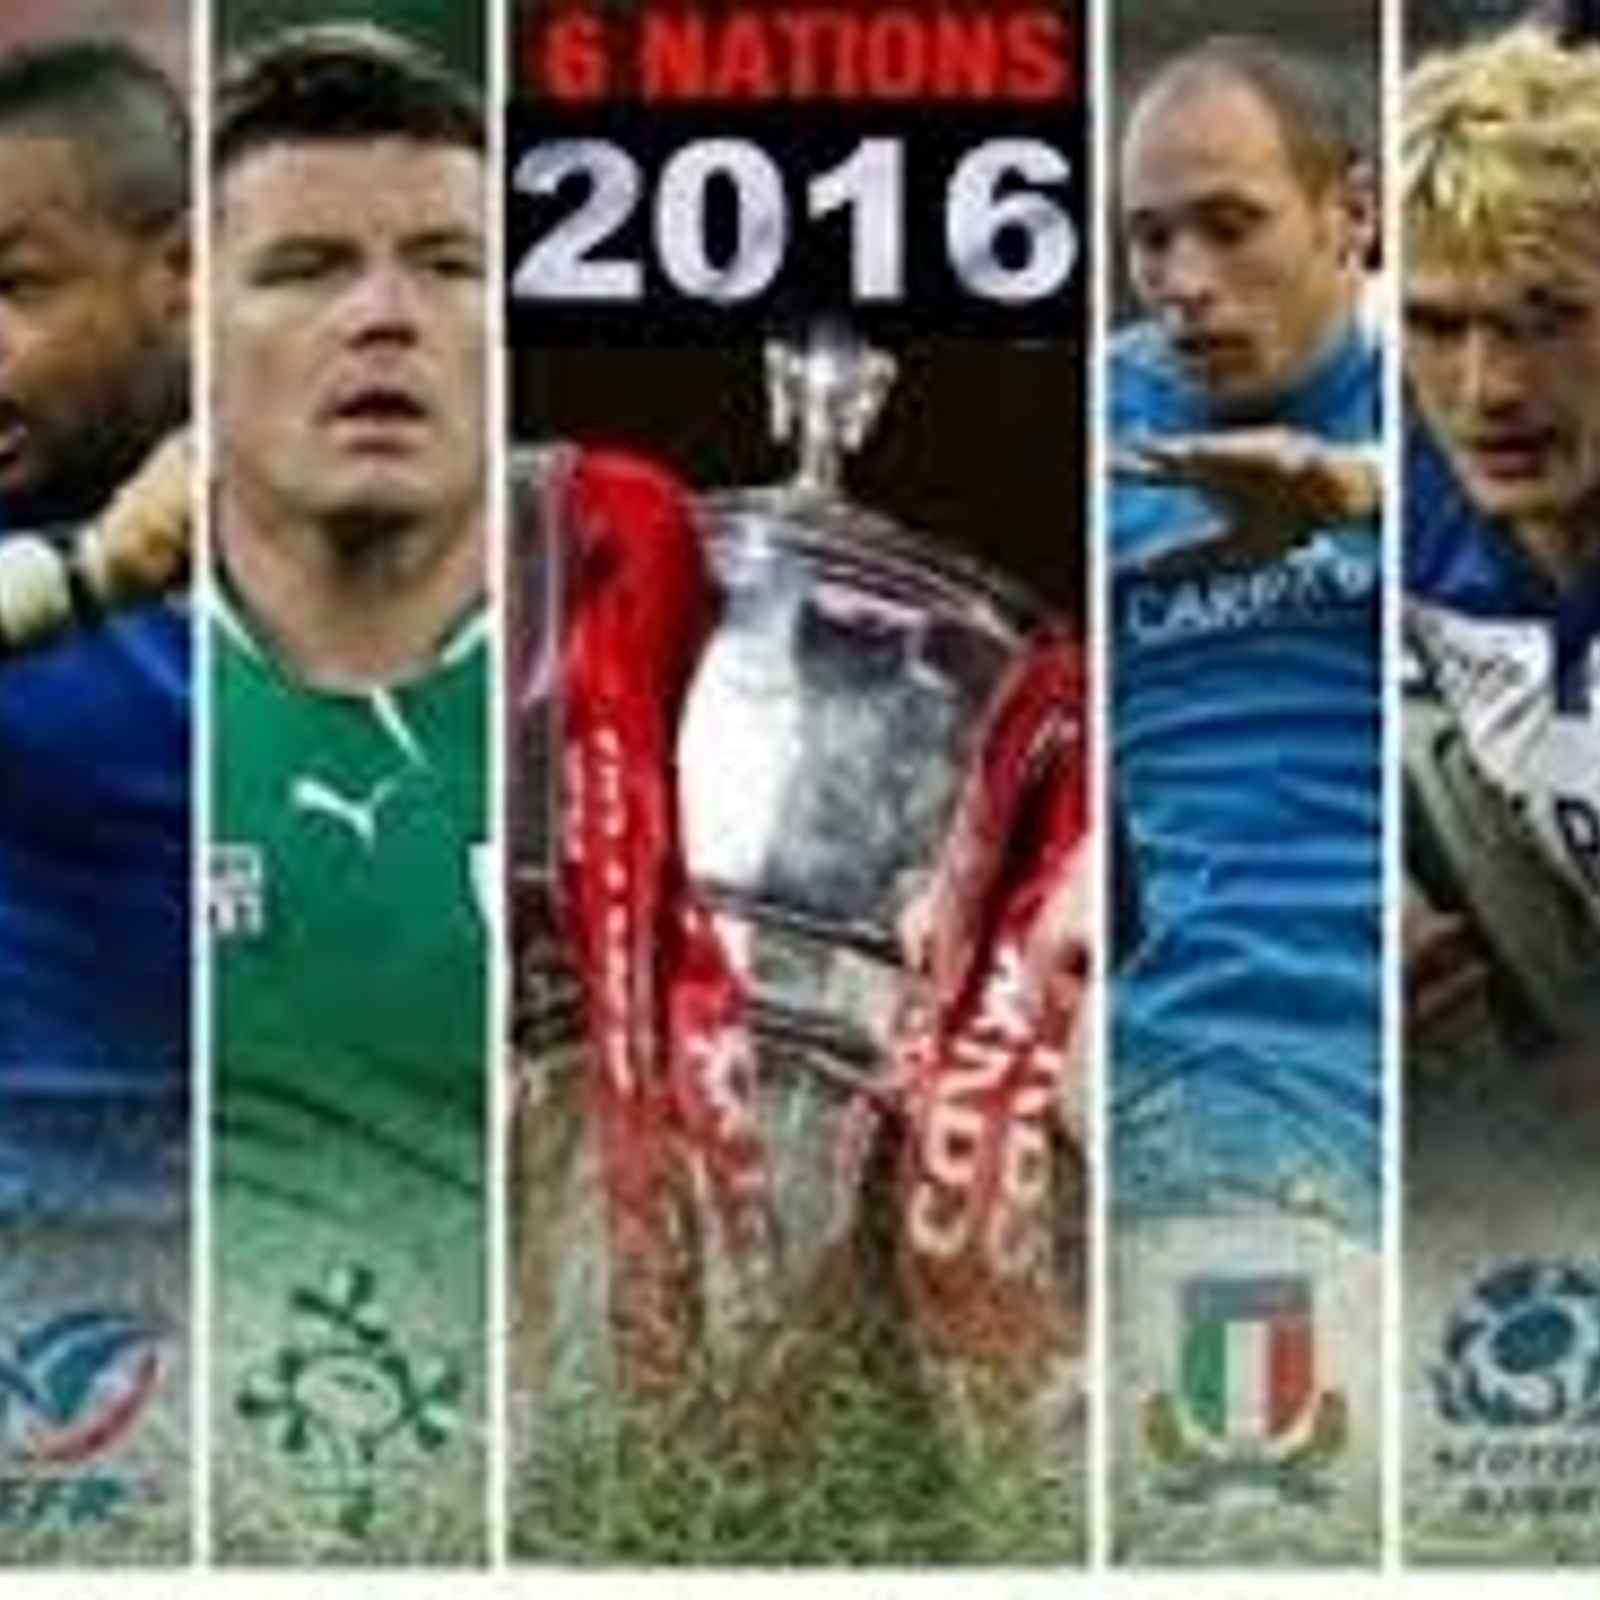 6 Nations Rugby is on at Southwell